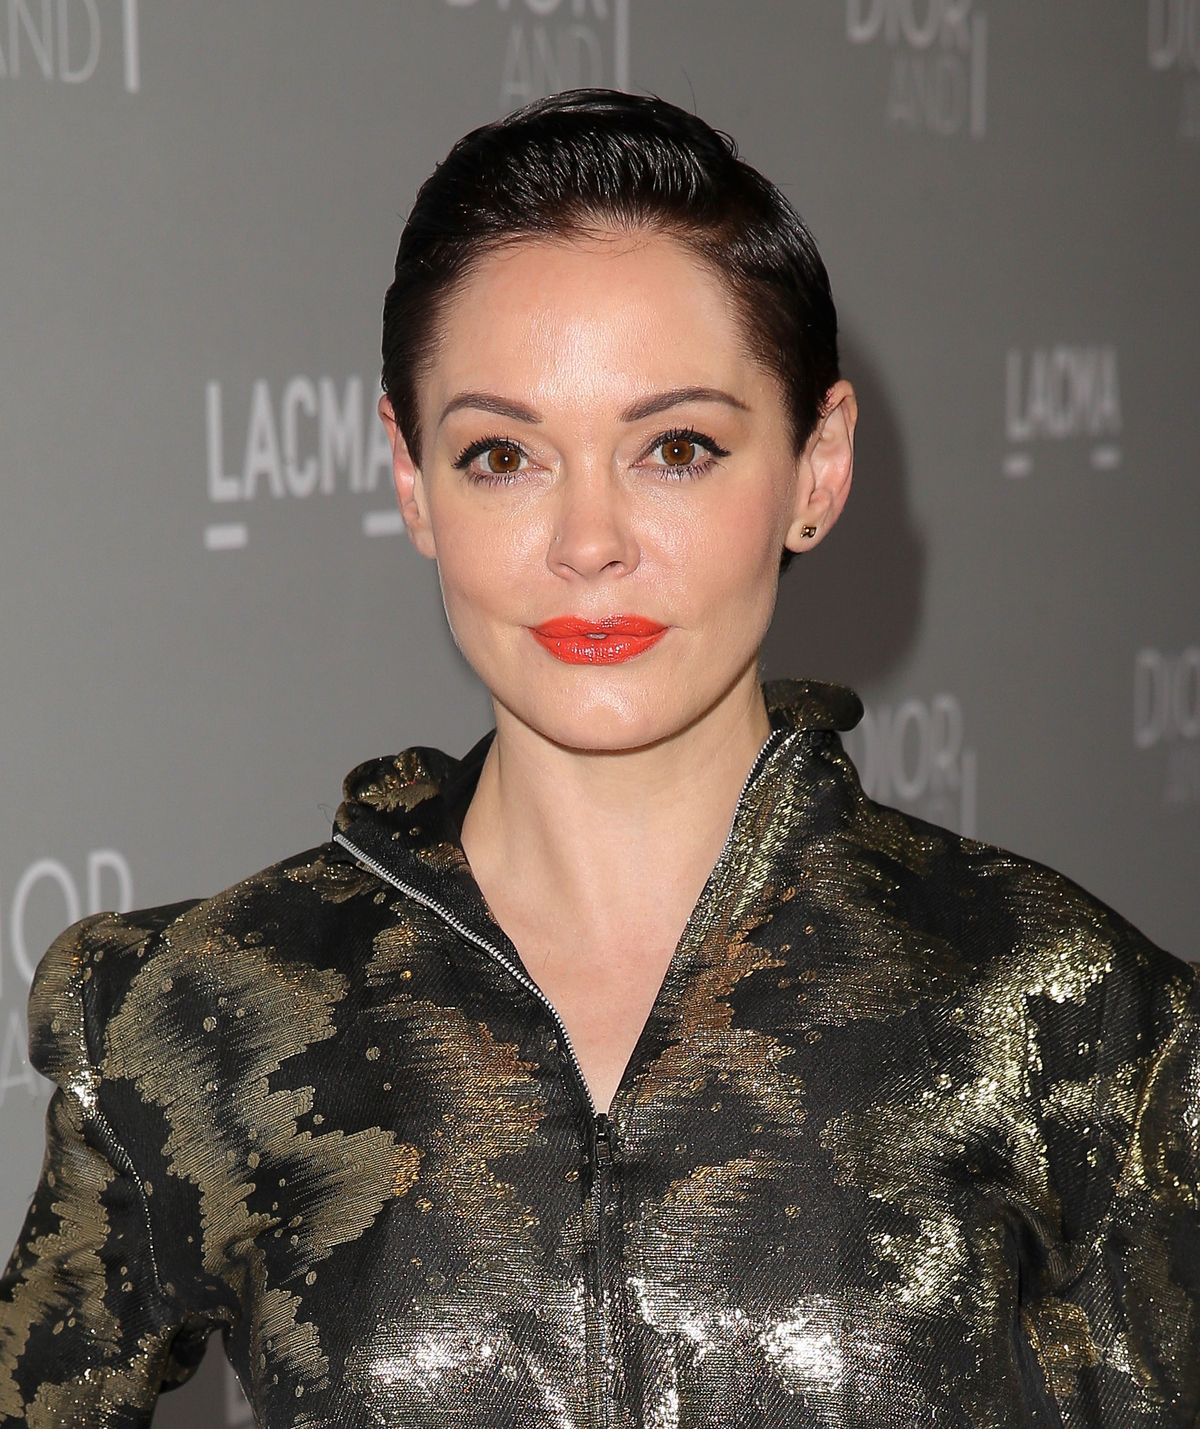 Rose McGowan Alleges She Was Raped By A Major Studio Executive